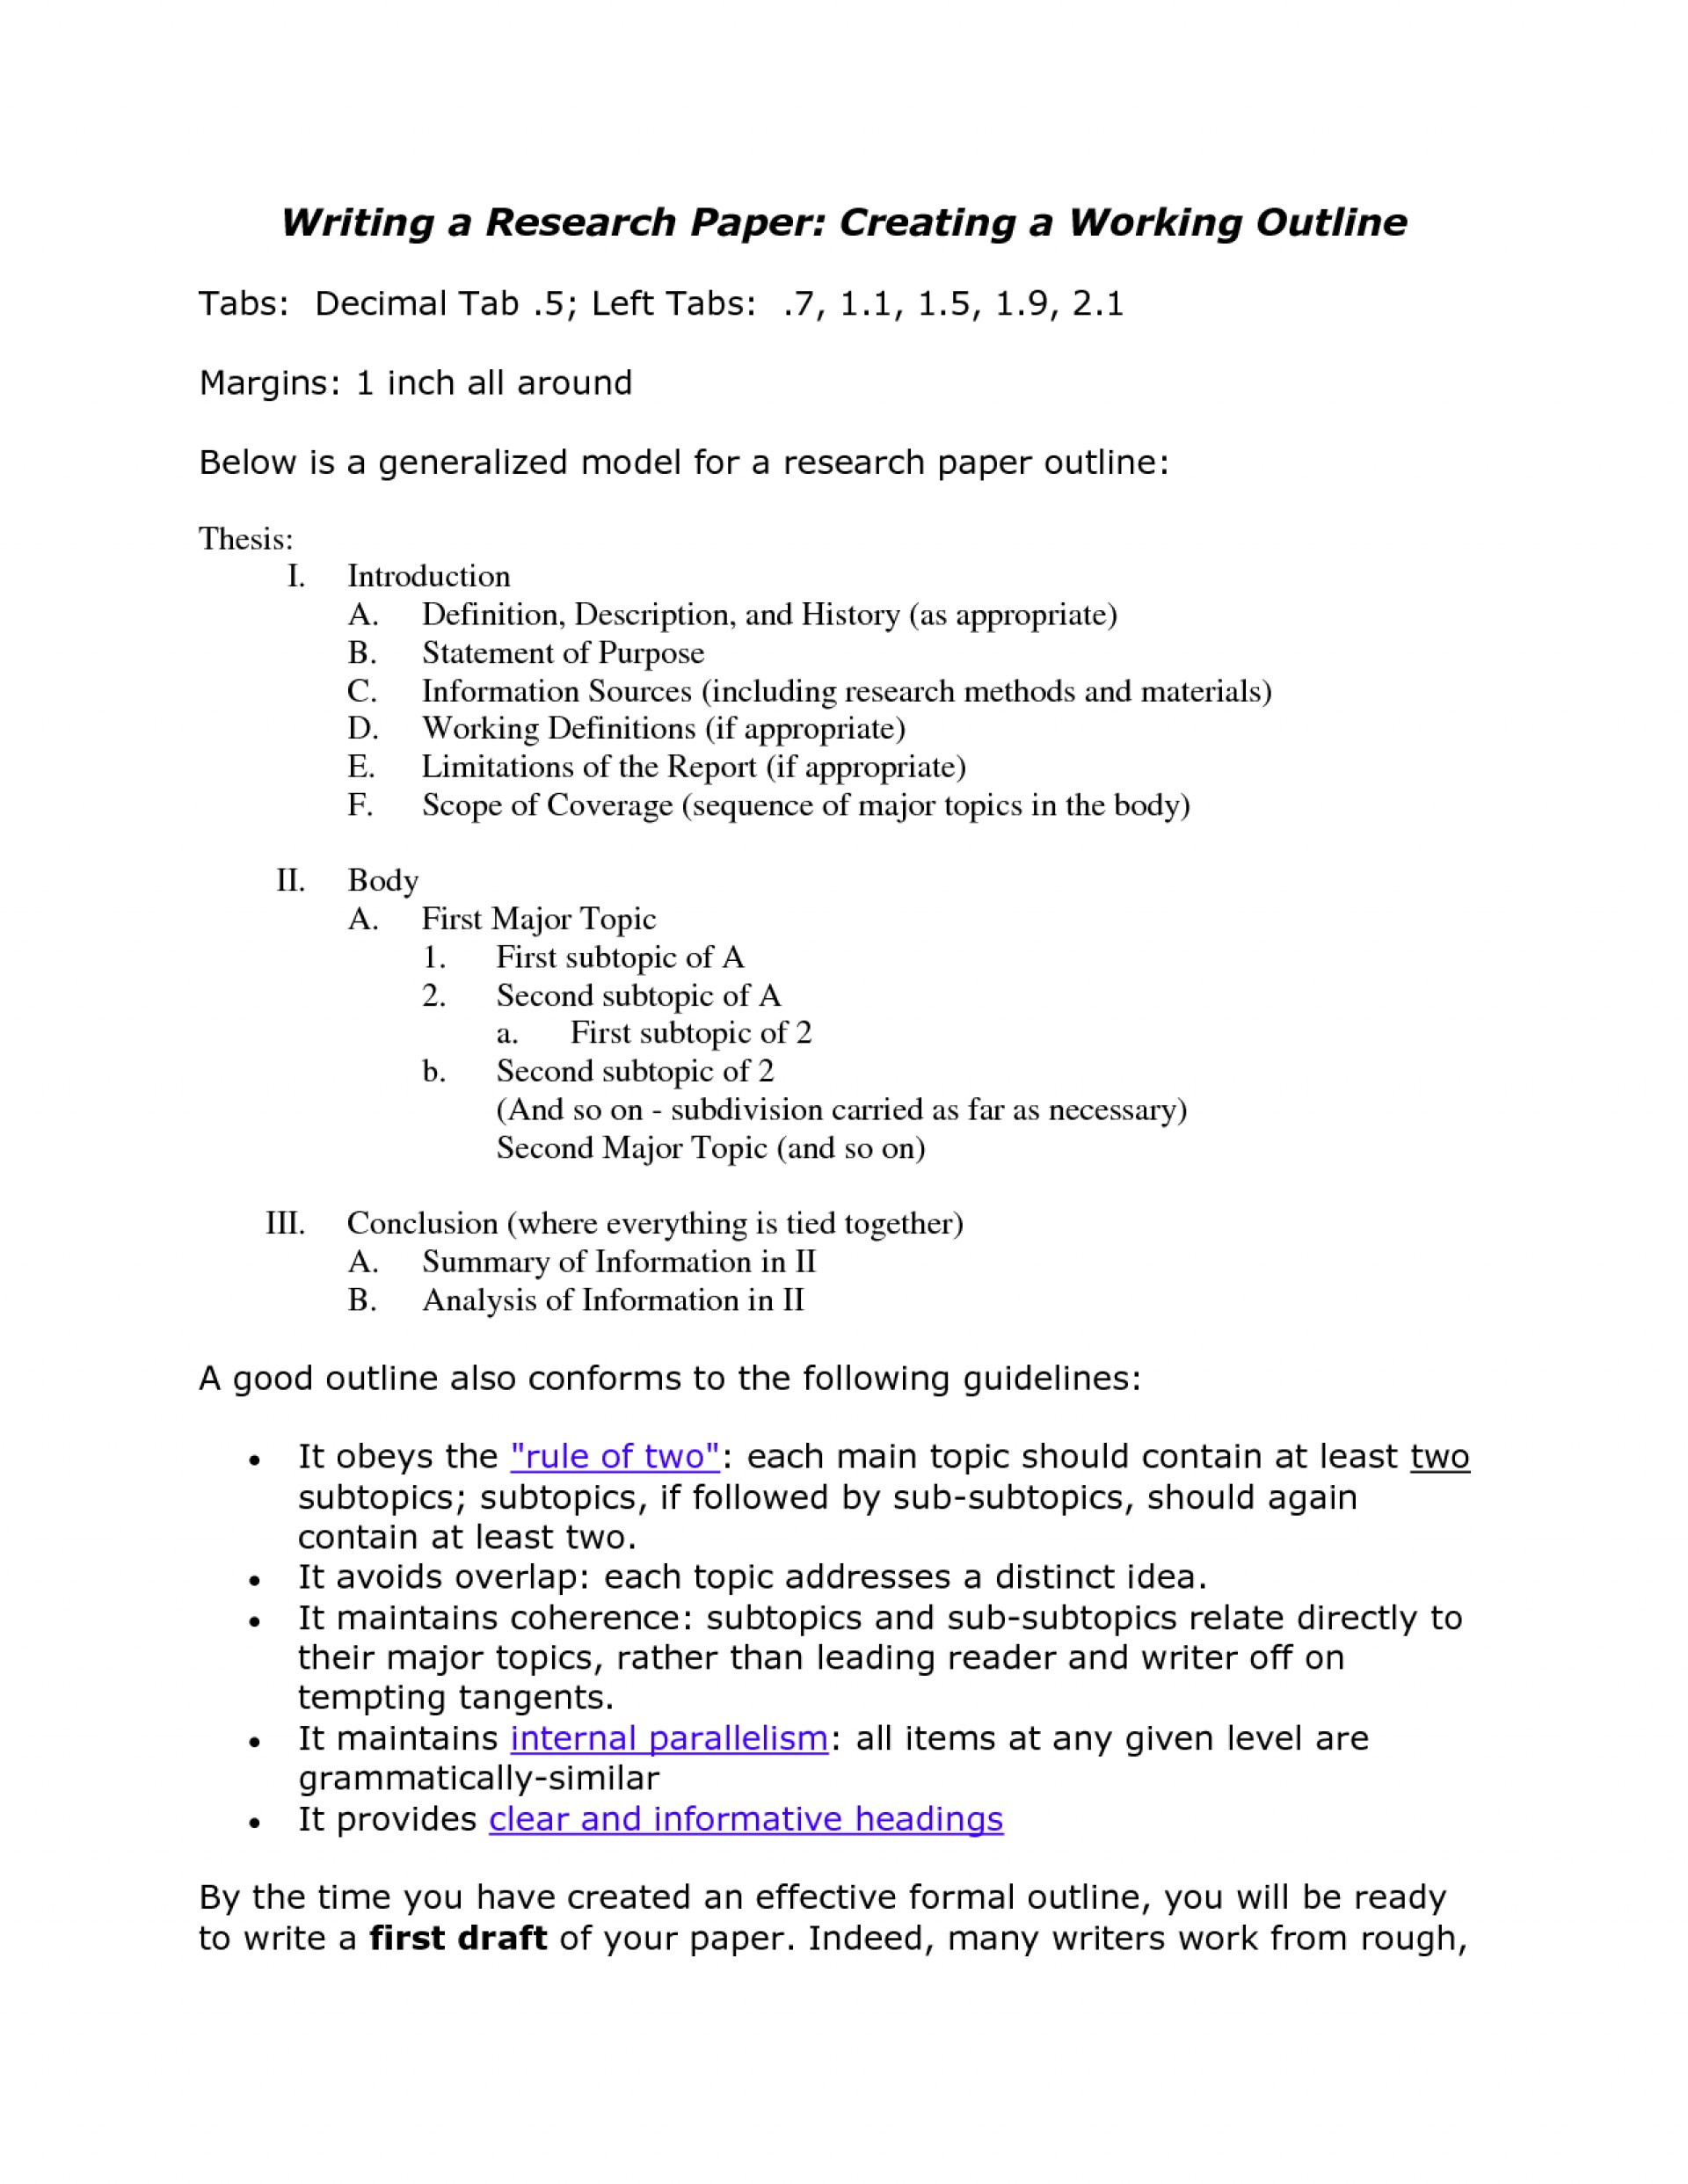 006 Working Outline For Research Paper Example 477670 Top Formal A Your Sample Of Apa 1920